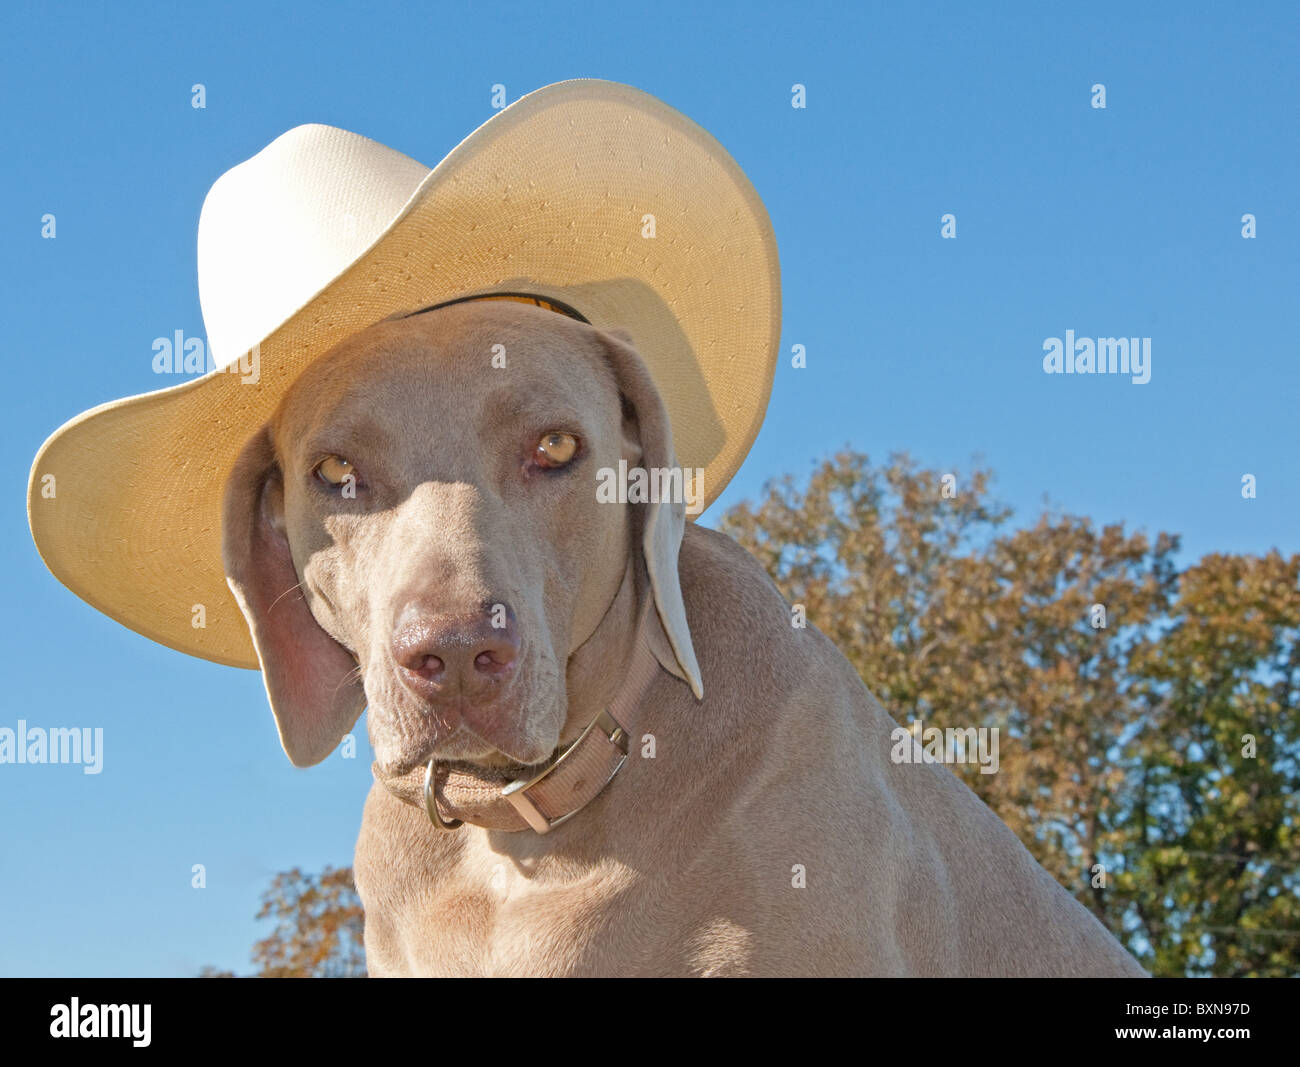 Humorous image of a Weimaraner dog with a cowboy hat against clear blue skies - Stock Image